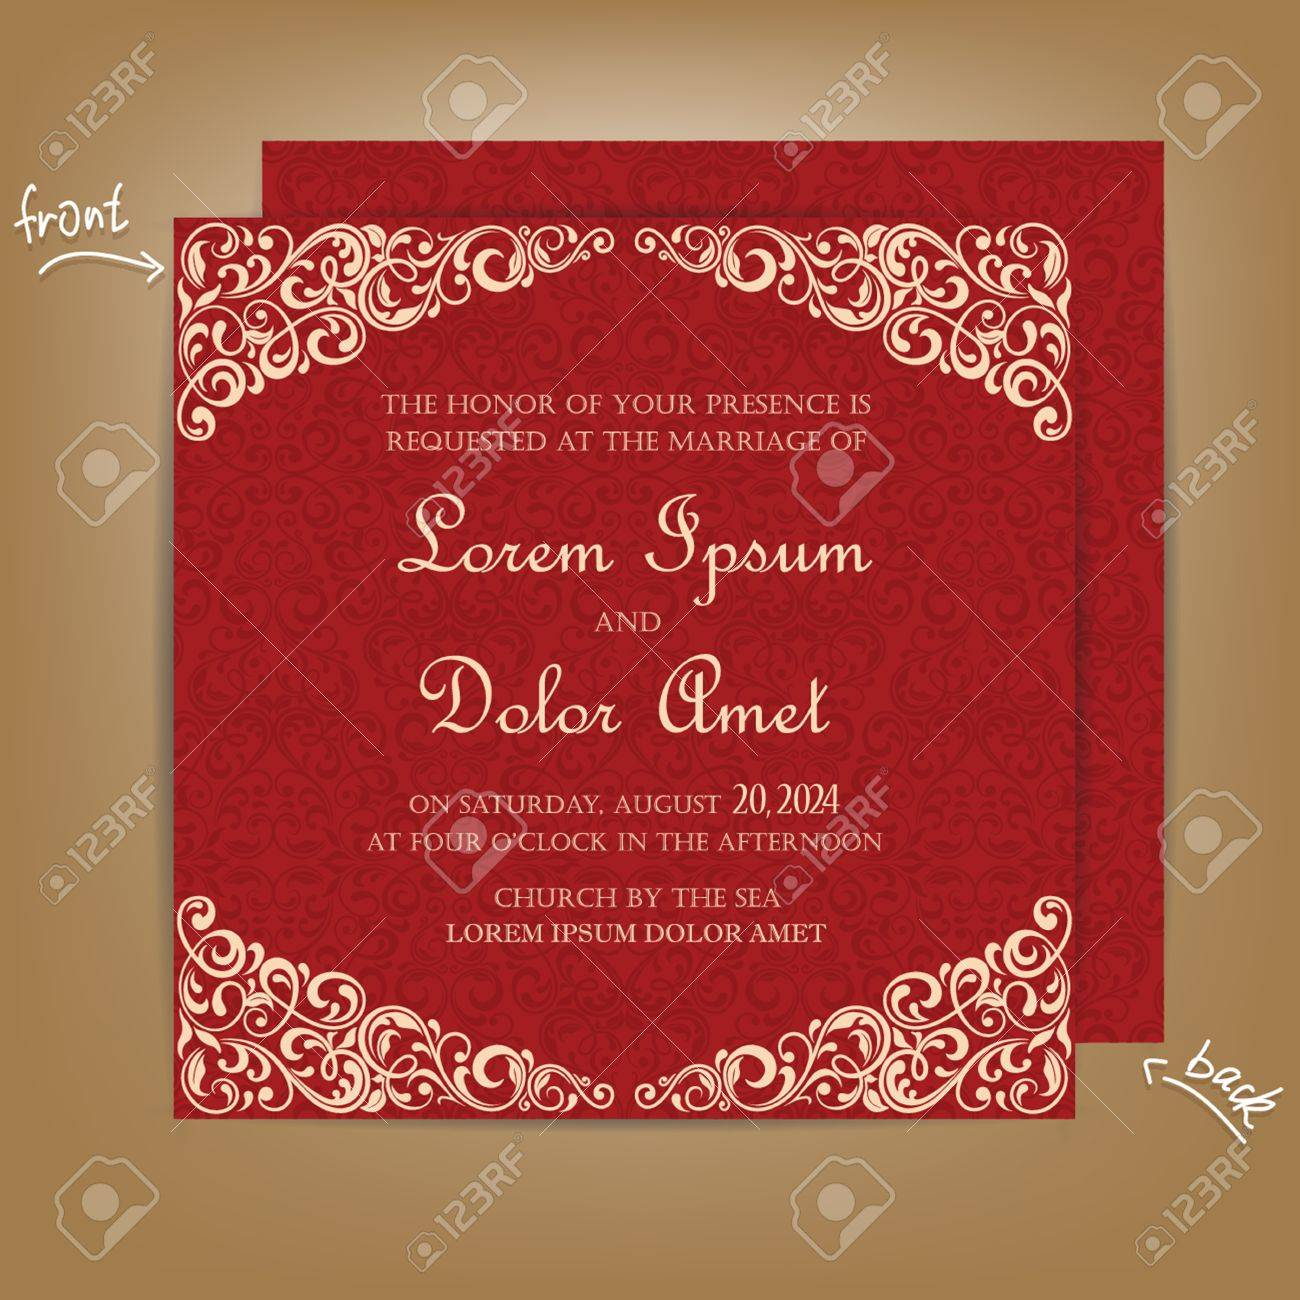 Red vintage wedding invitation card royalty free cliparts vetores imagens red vintage wedding invitation card stopboris Choice Image